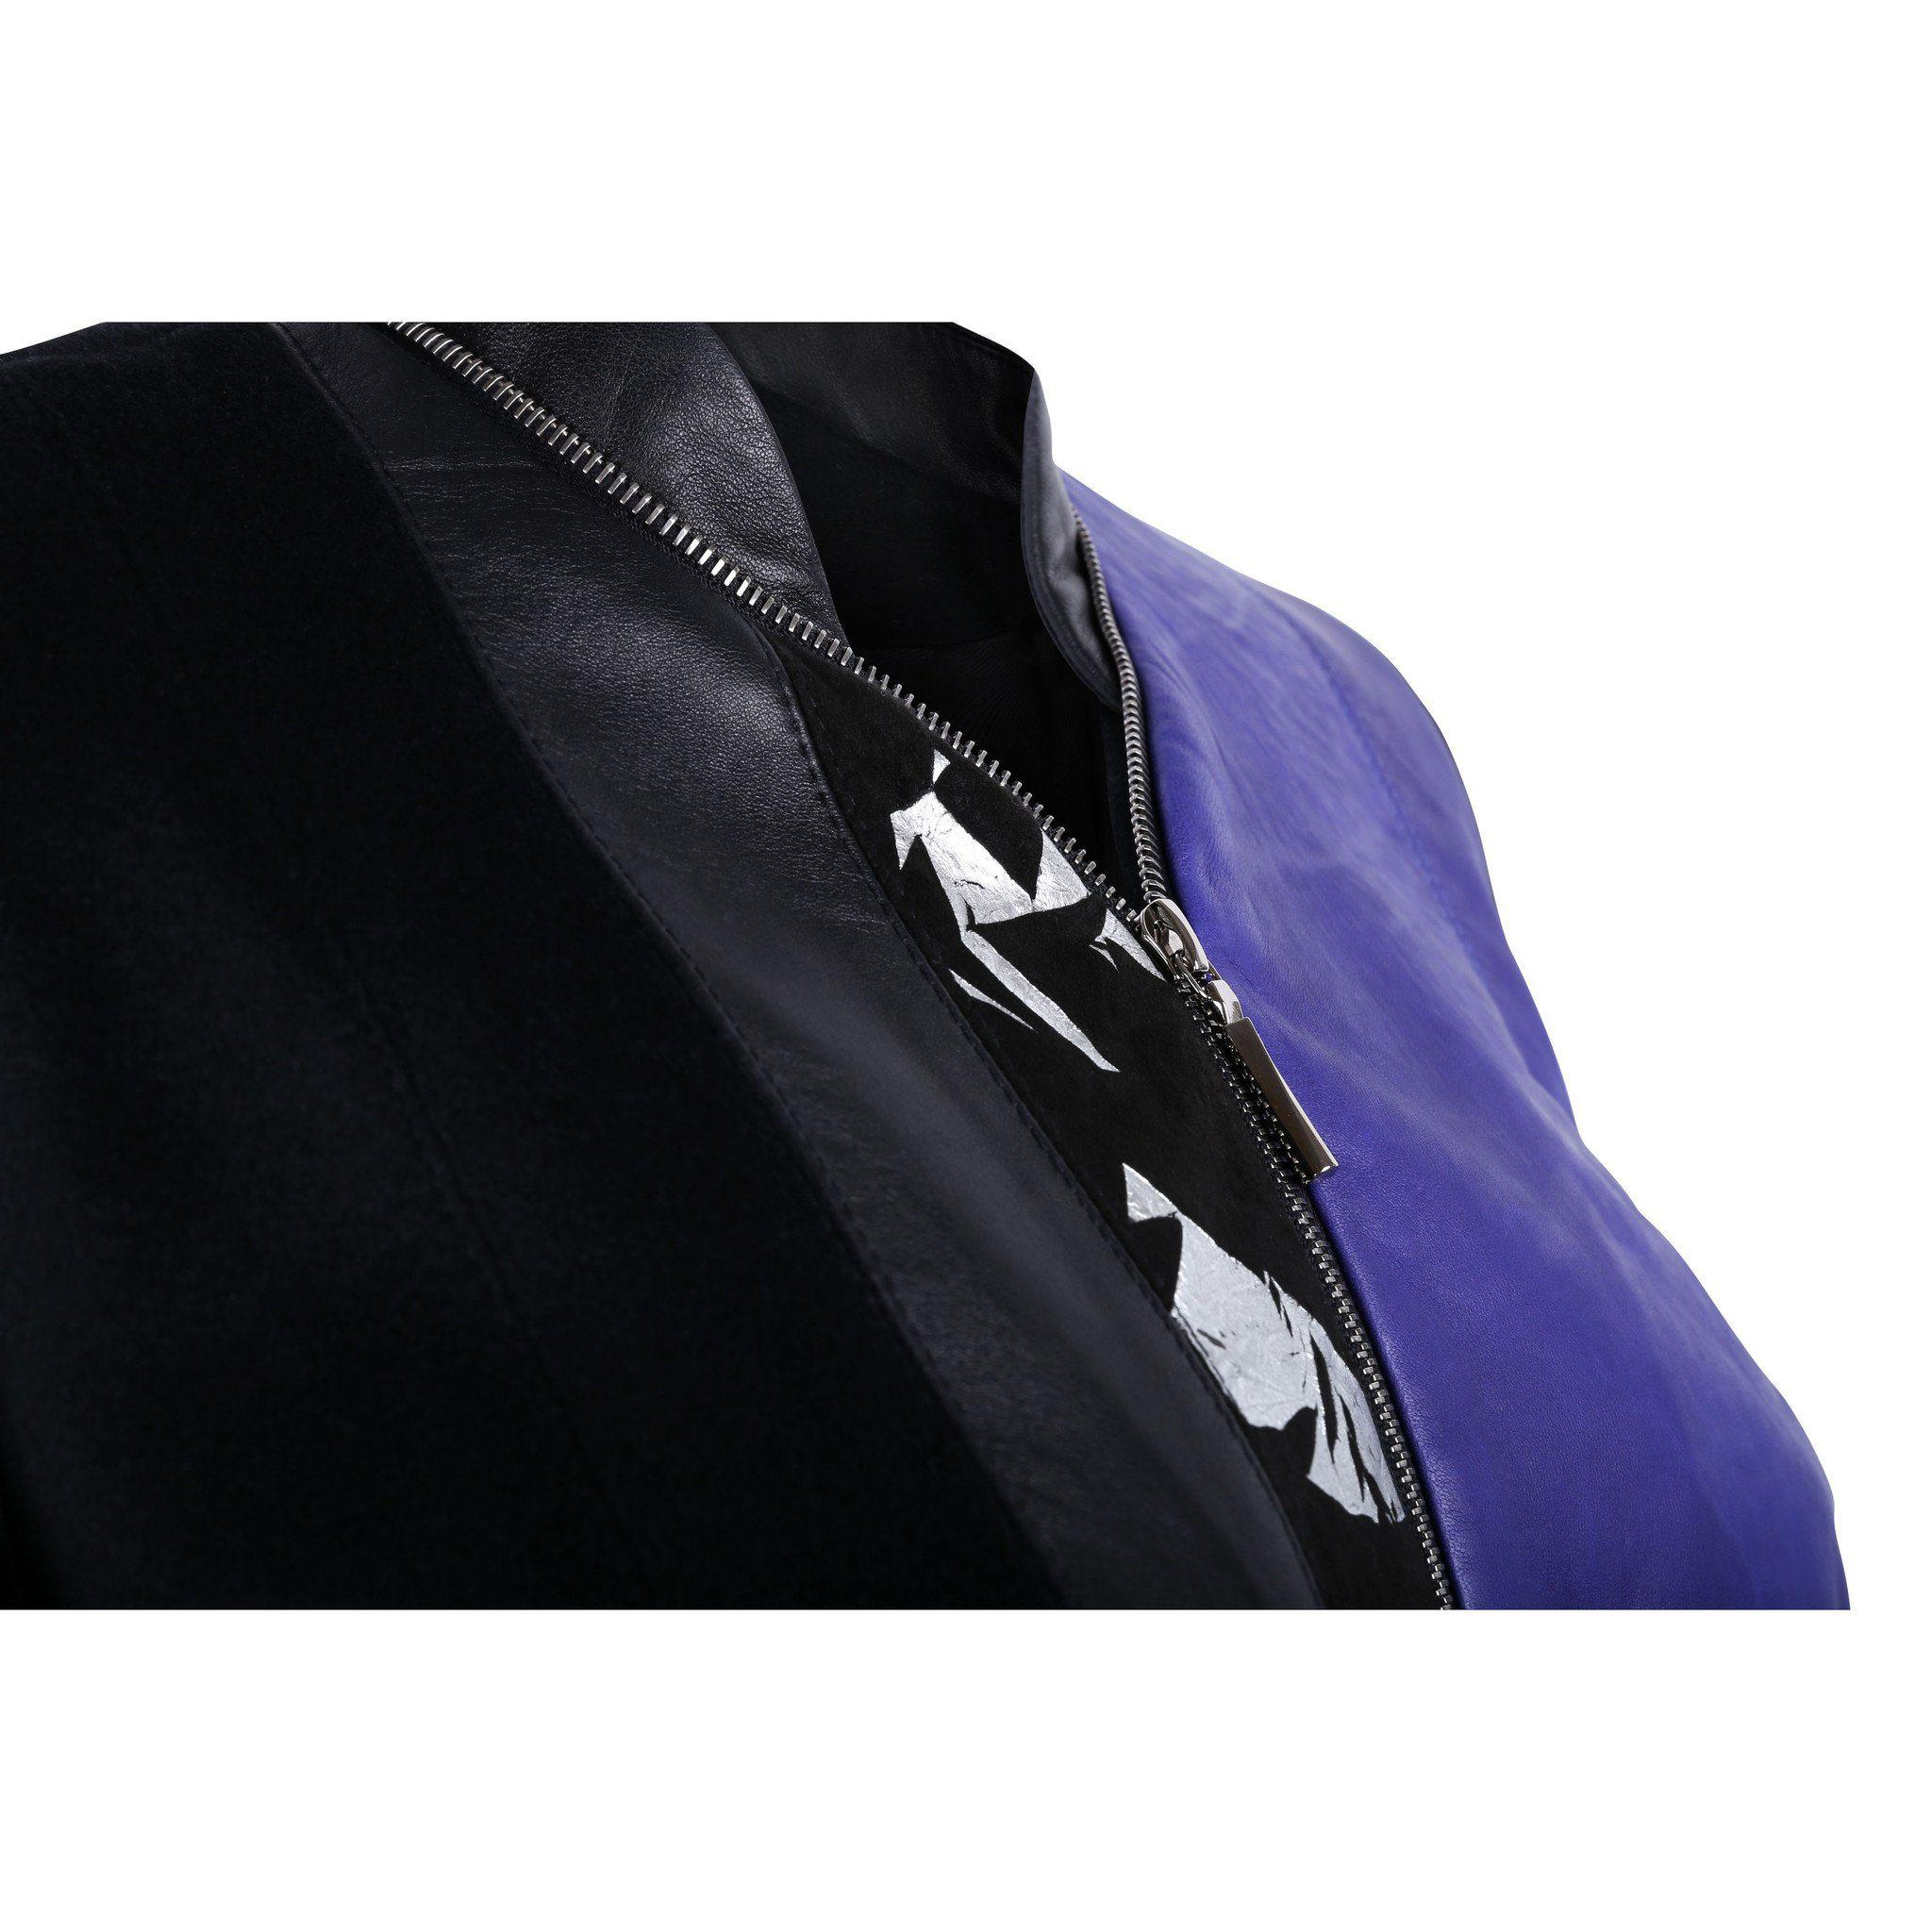 Black and Purple Leather Bomber Jacket with Silver Print Motif 1